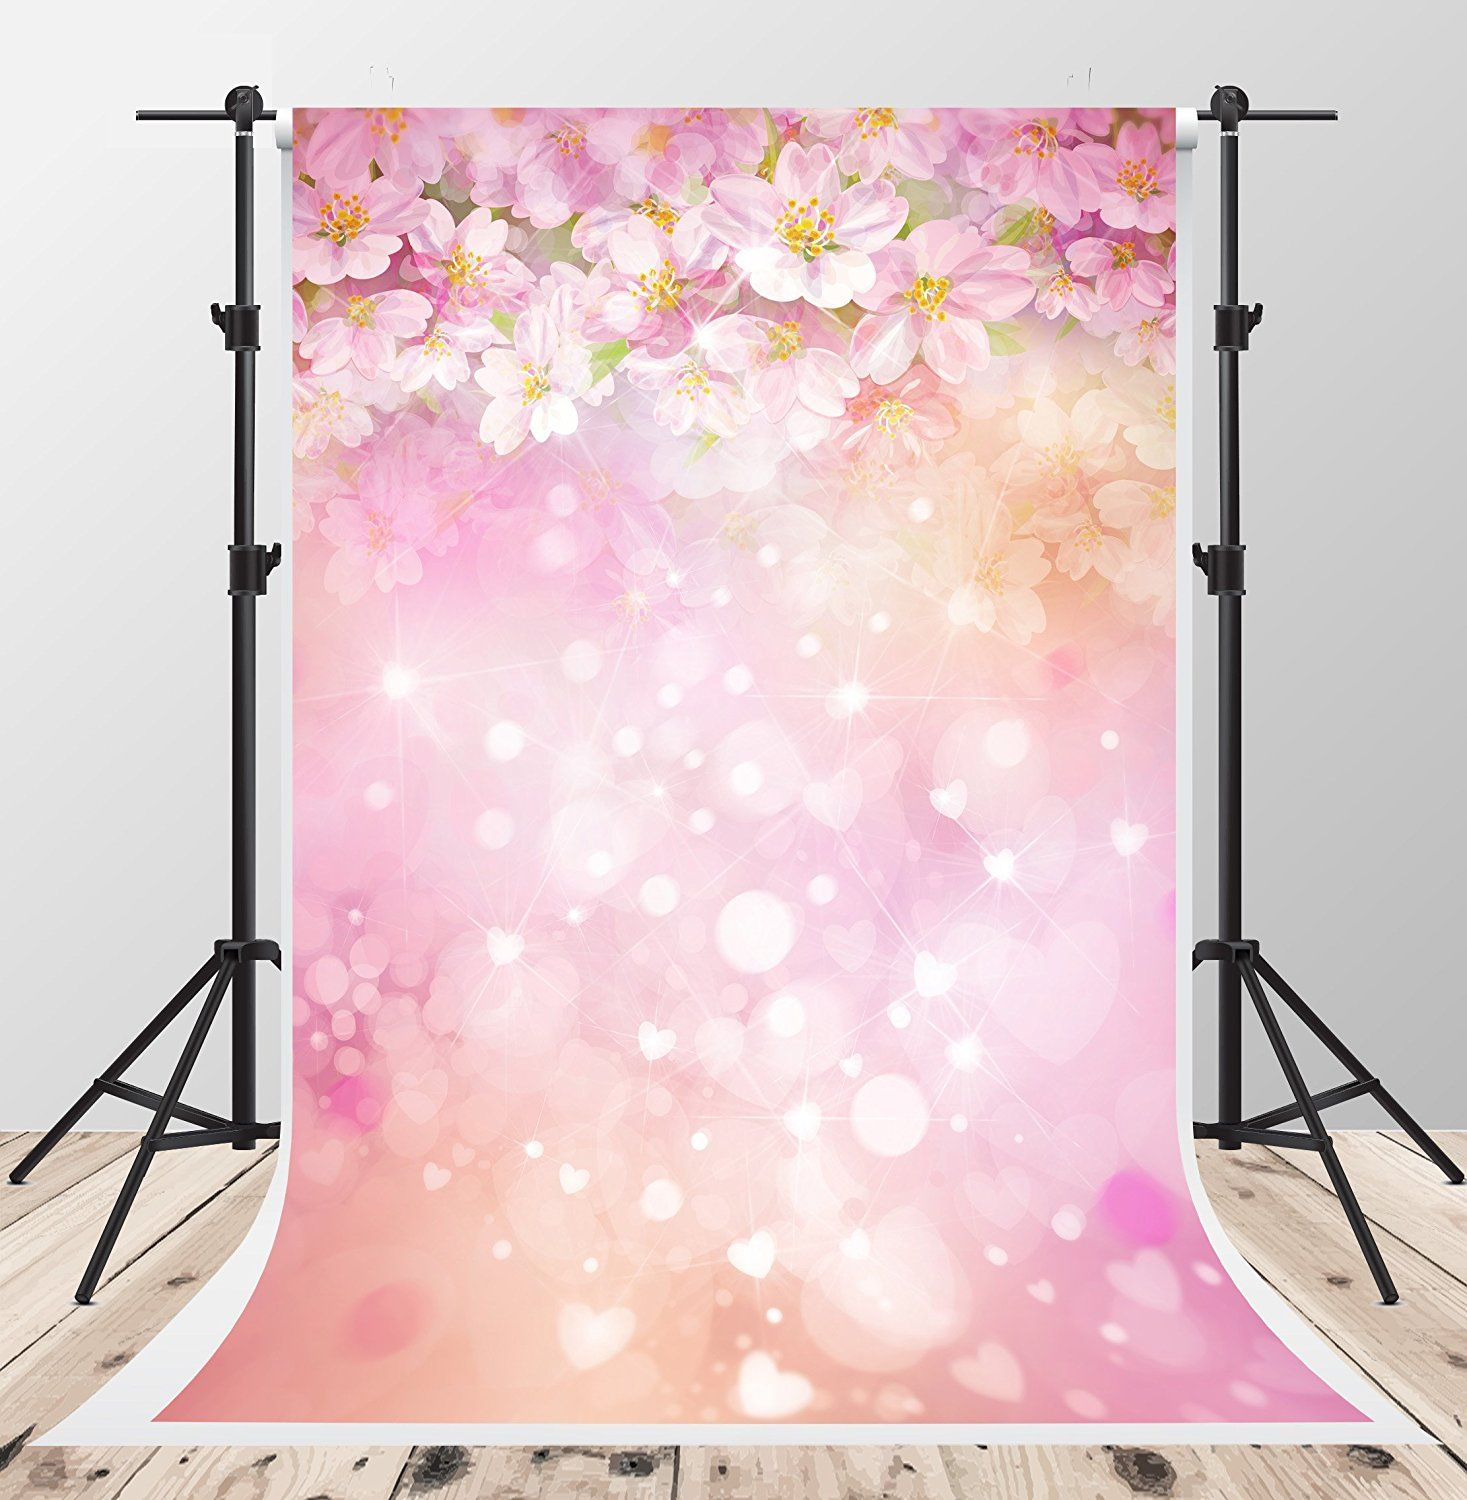 Brick Floor House Pink Flowers Photography Backdrops Photo Props Studio Background 5x7ft